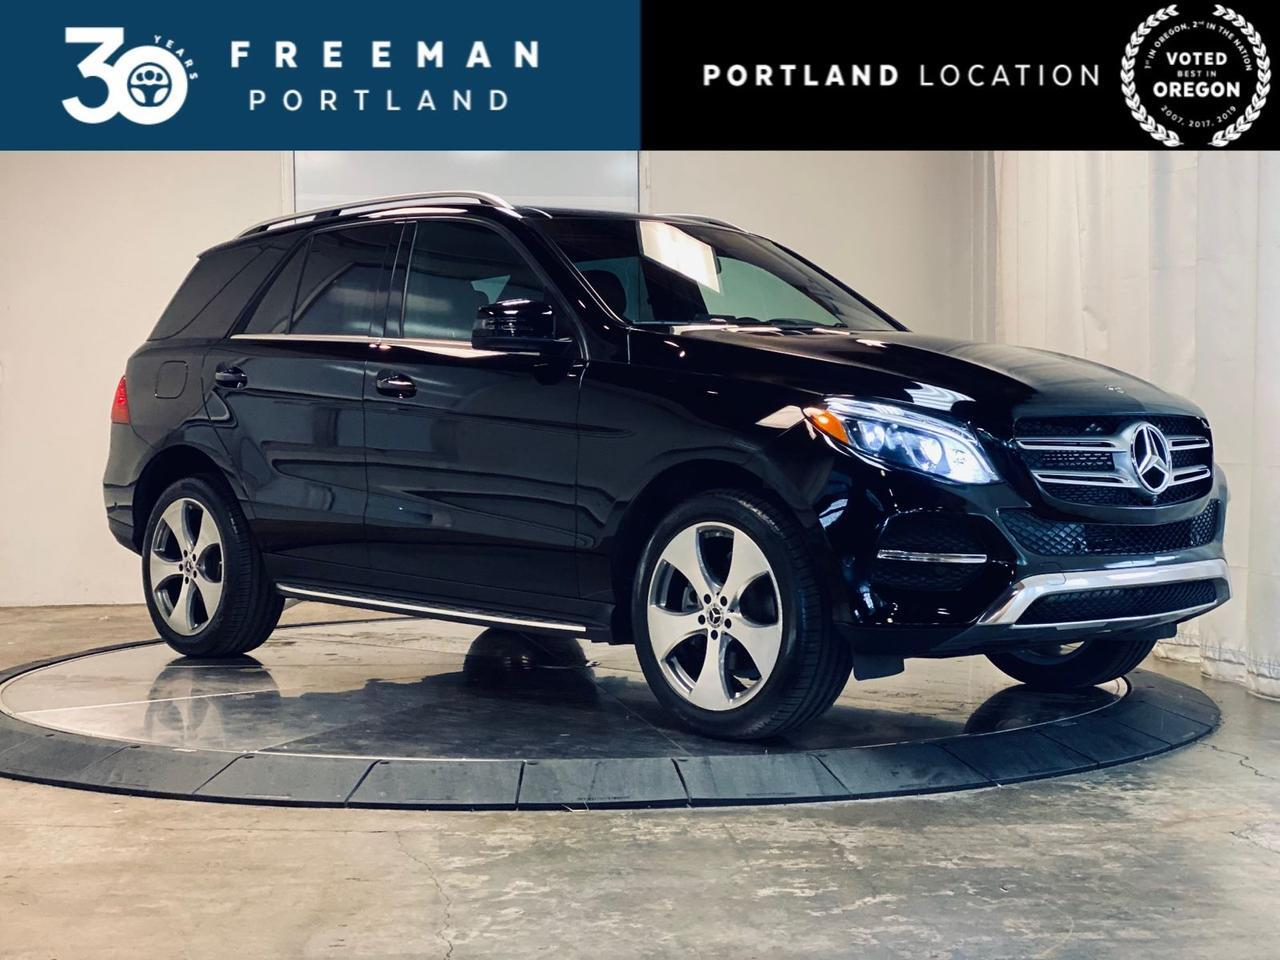 2017 Mercedes-Benz GLE 350 4MATIC Pano Lighting Pkg Parktronic Lane Assist Portland OR